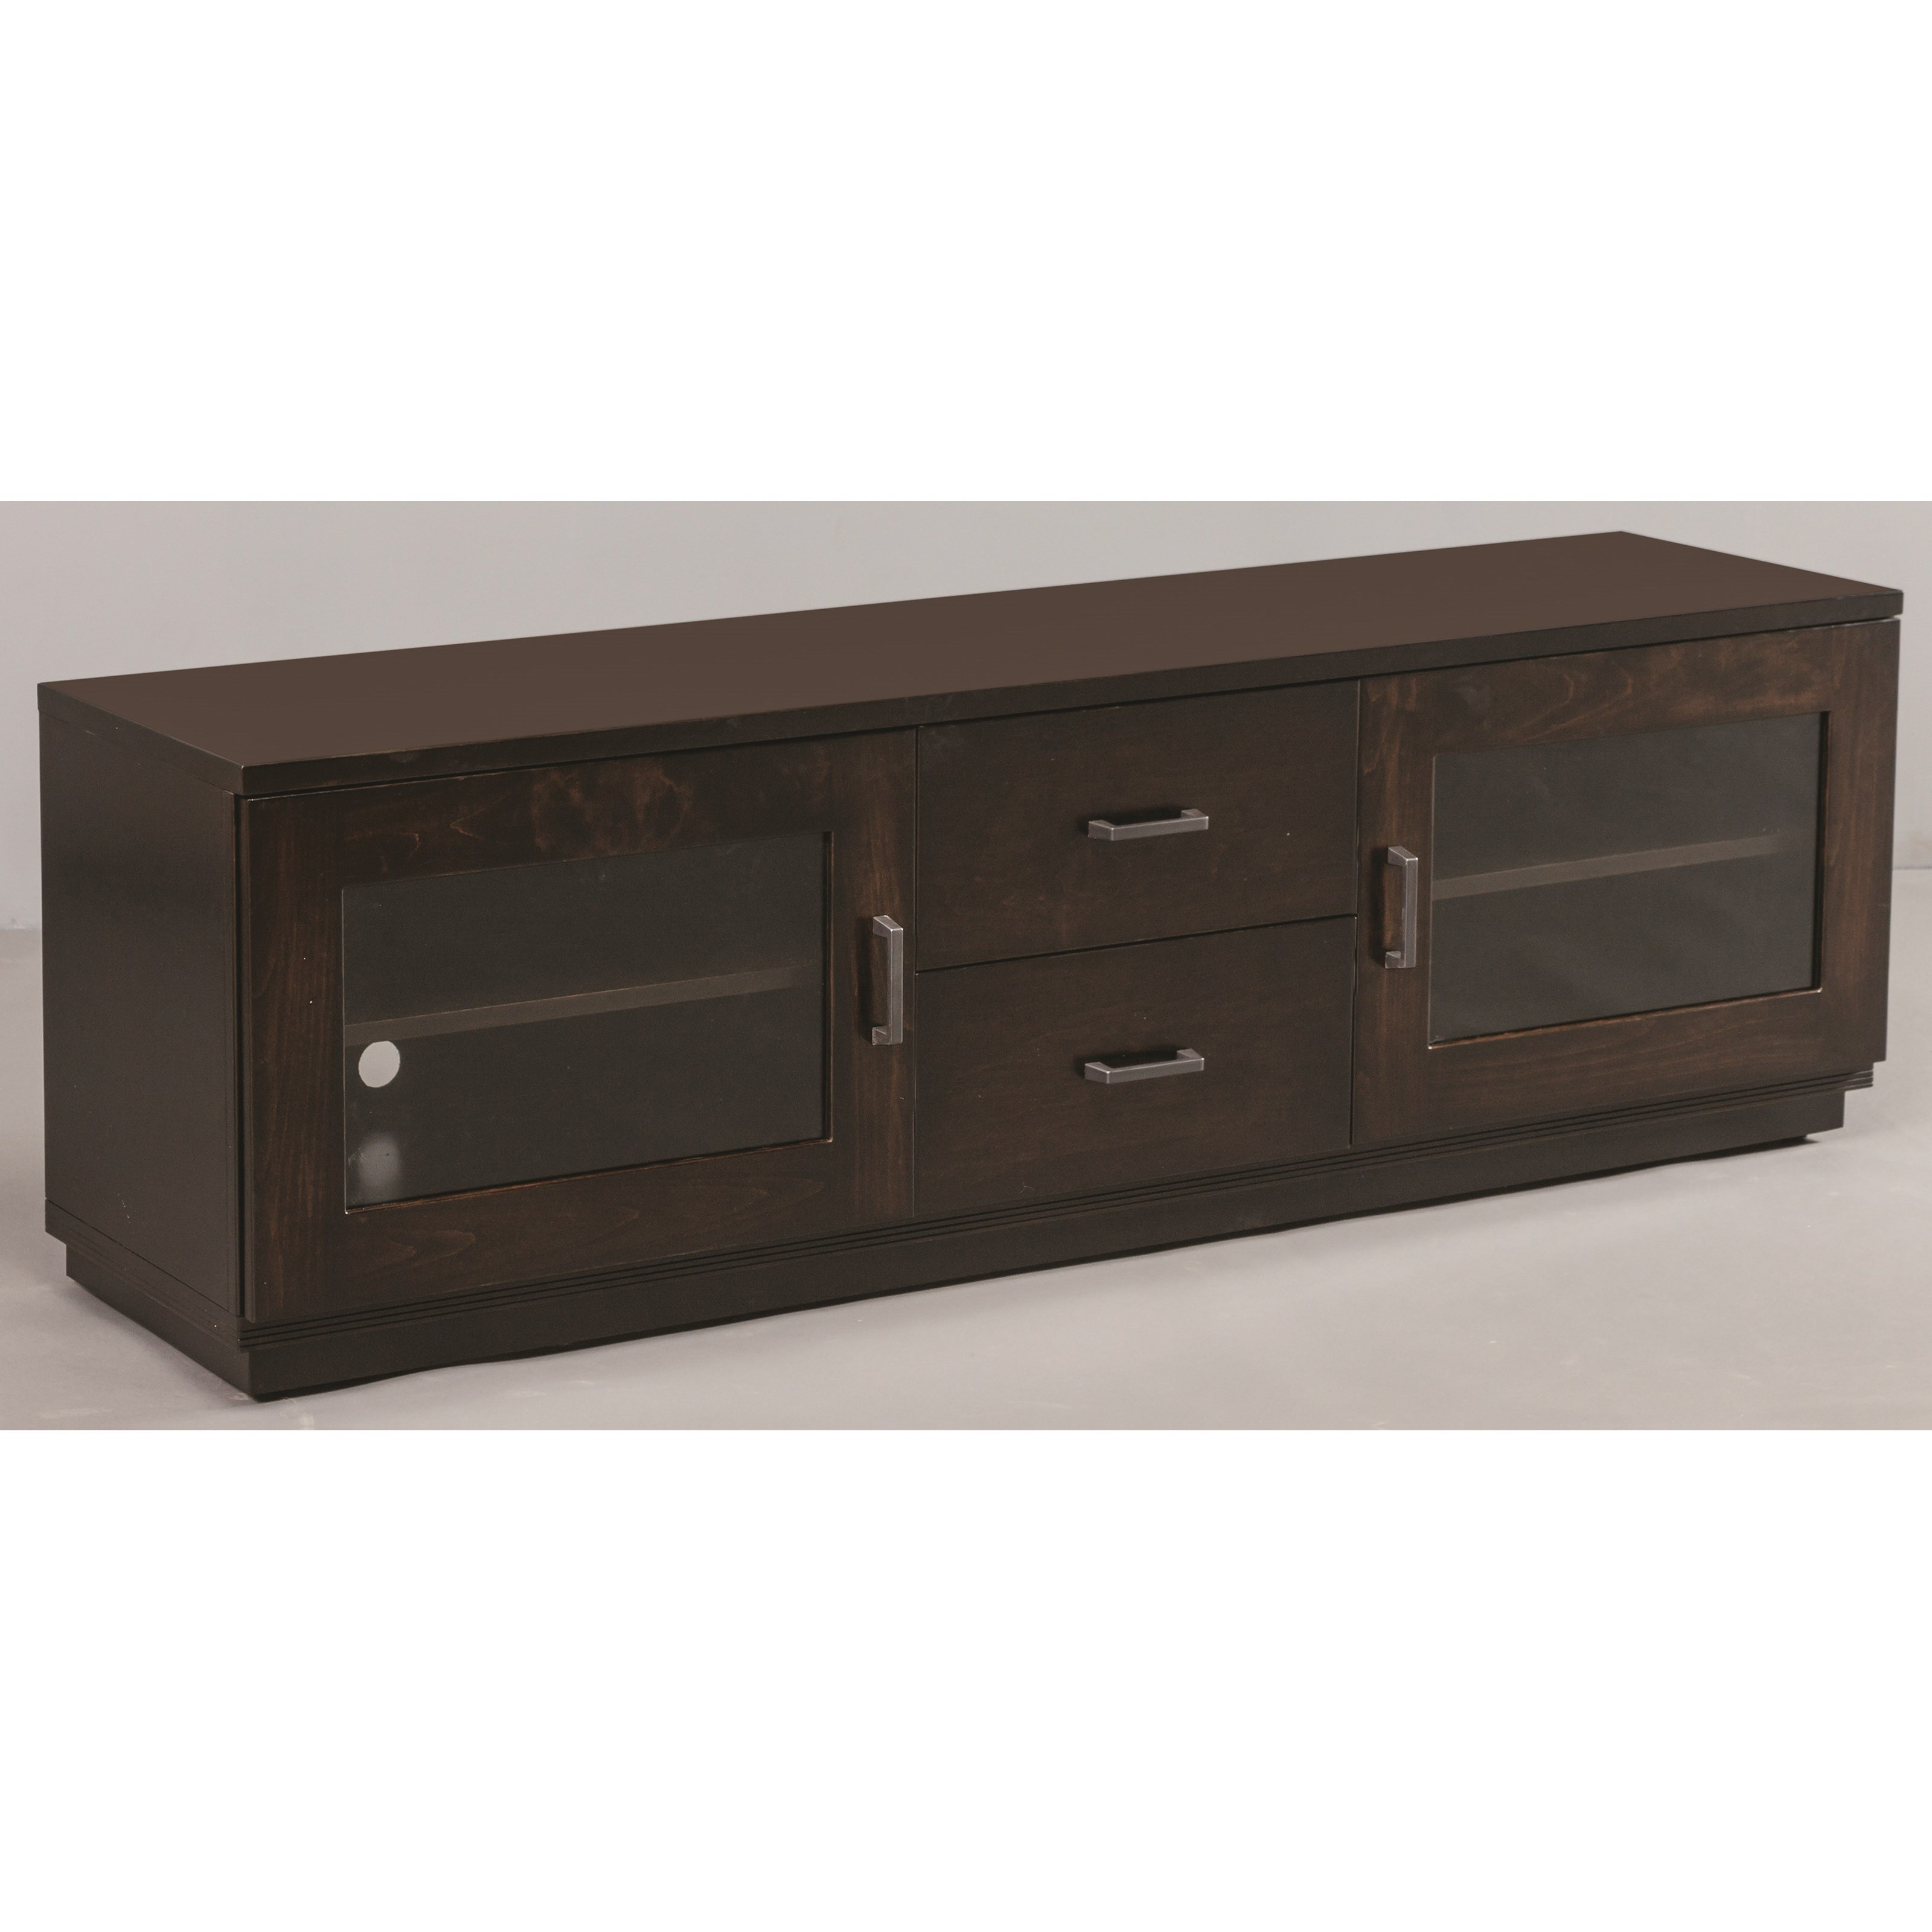 Entertainment Venice TV Stand by INTEG Wood Products at Saugerties Furniture Mart